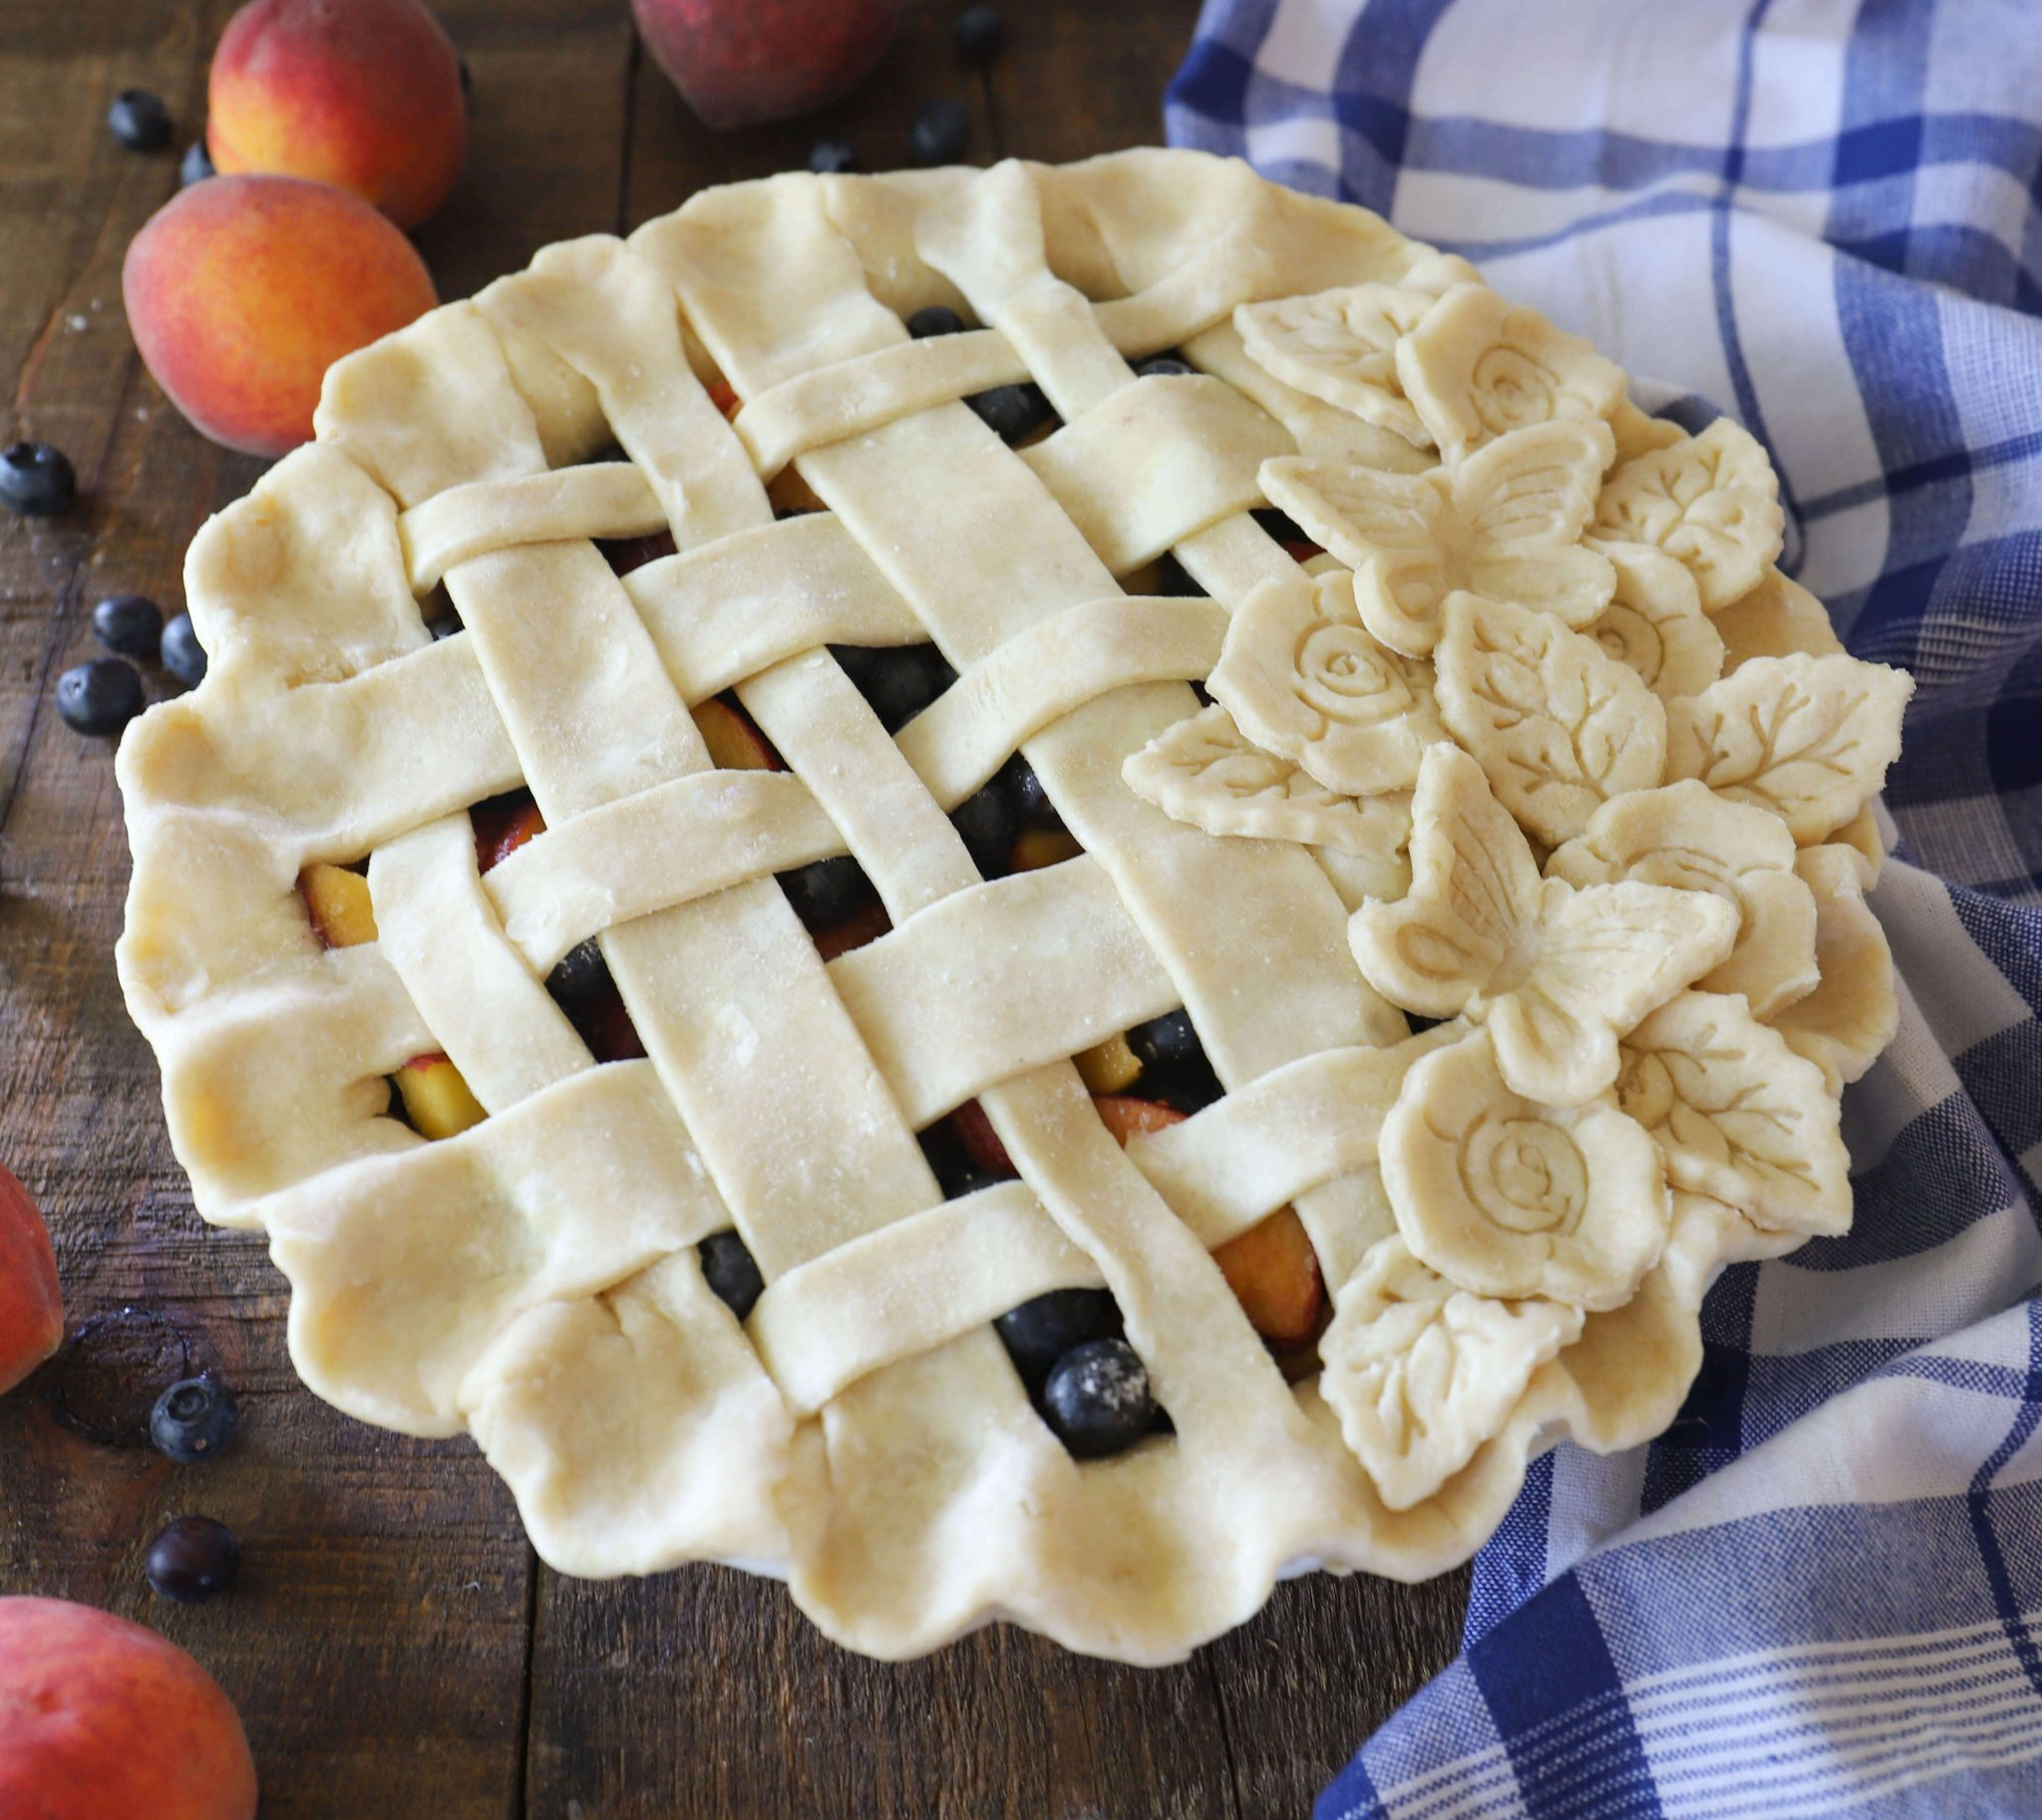 Peach and Blueberry Pie